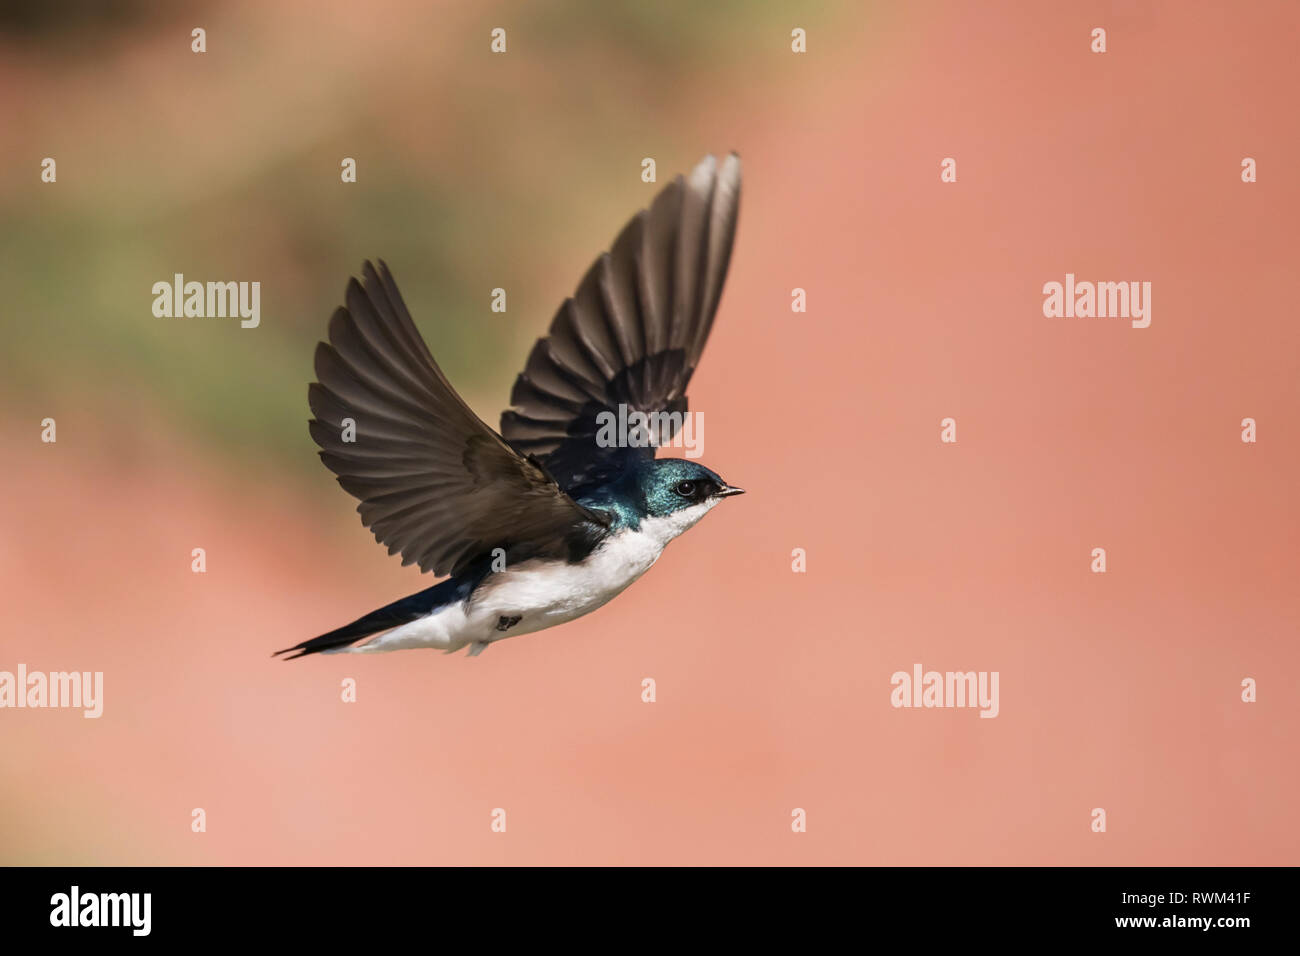 Tree swallow (Tachycineta bicolor) in flight, taken at Lac le Jeune, near Kamloops; British Columbia, Canada Stock Photo